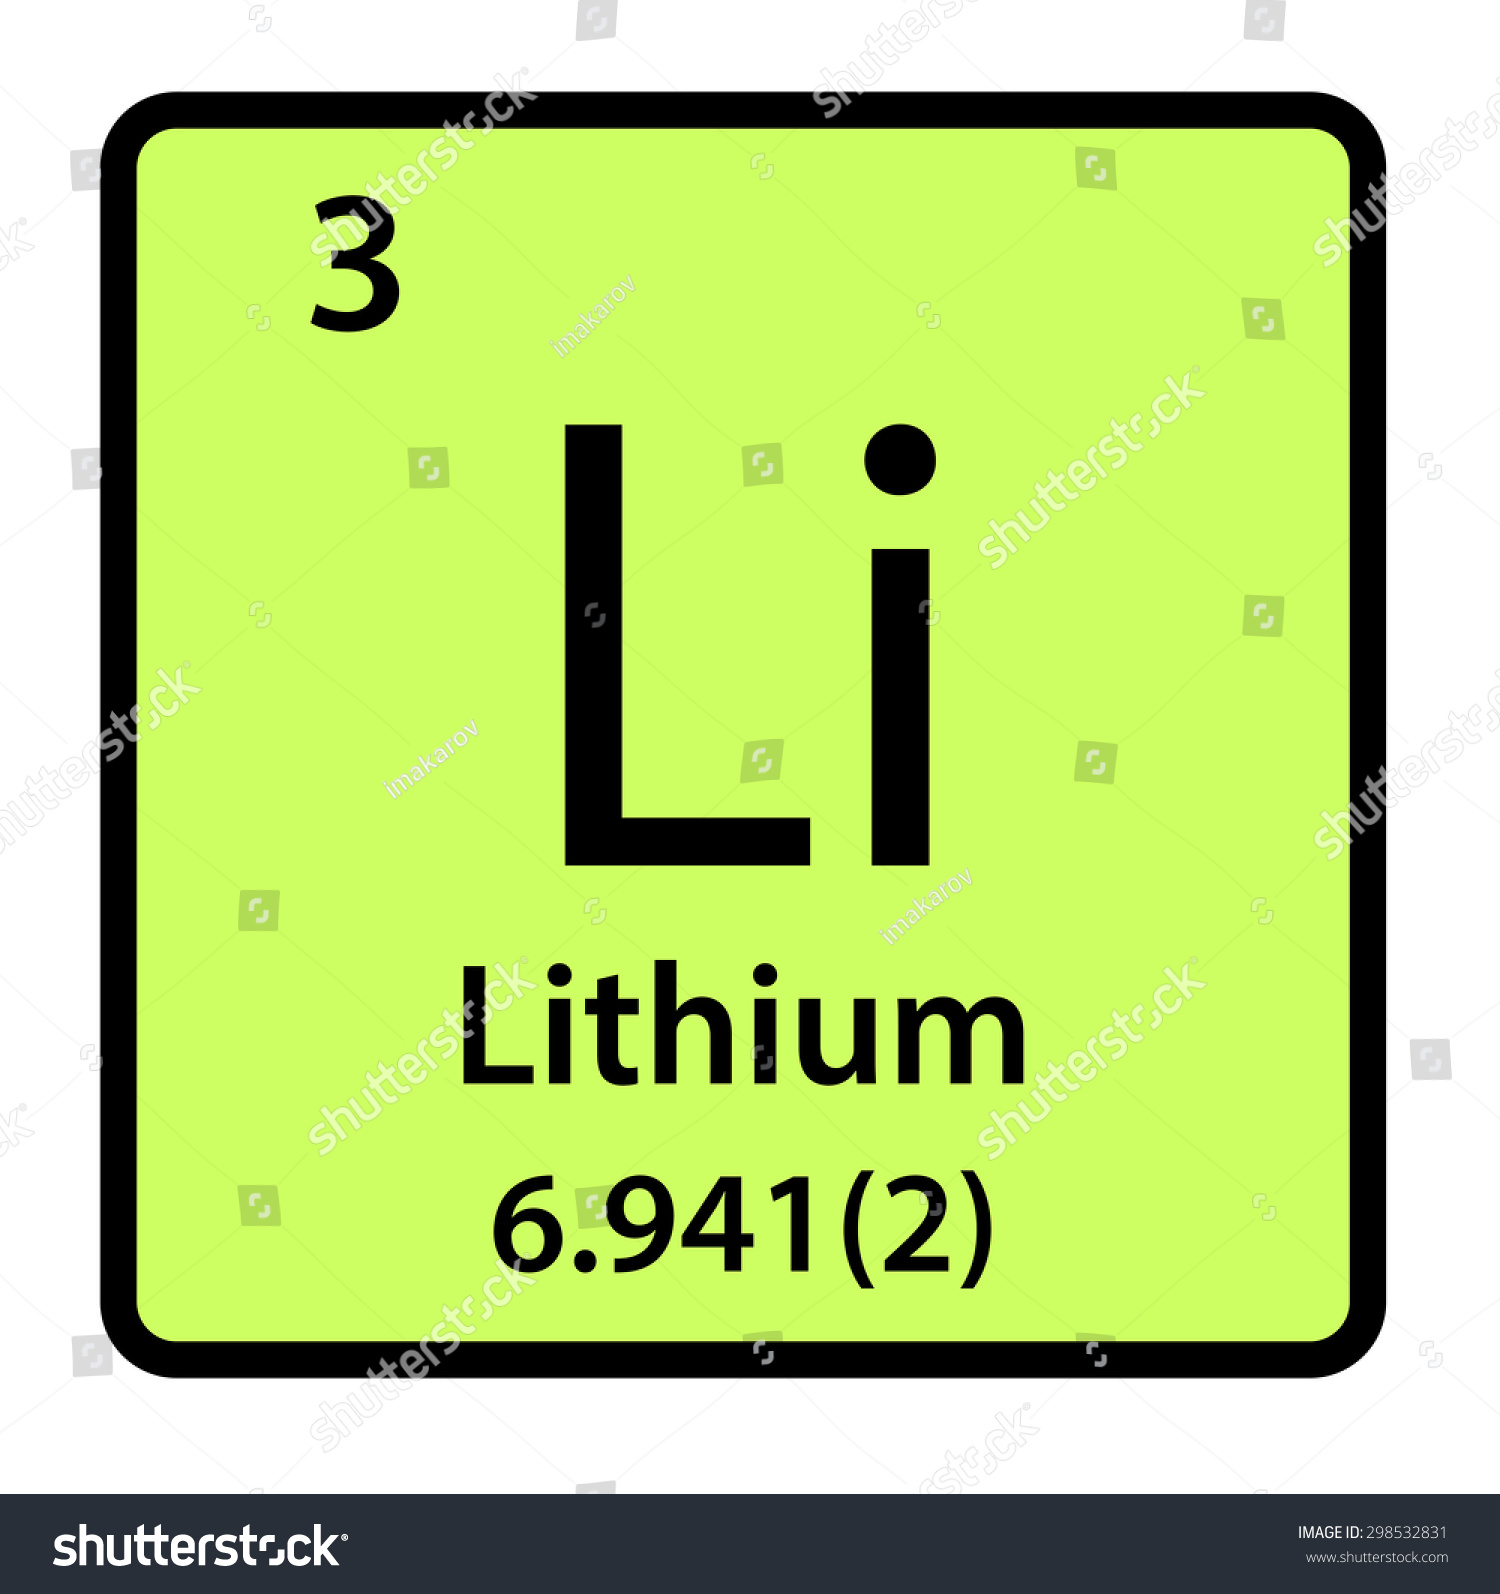 Periodic table of elements lithium image collections periodic periodic table li choice image periodic table images periodic table of elements lithium choice image periodic gamestrikefo Image collections